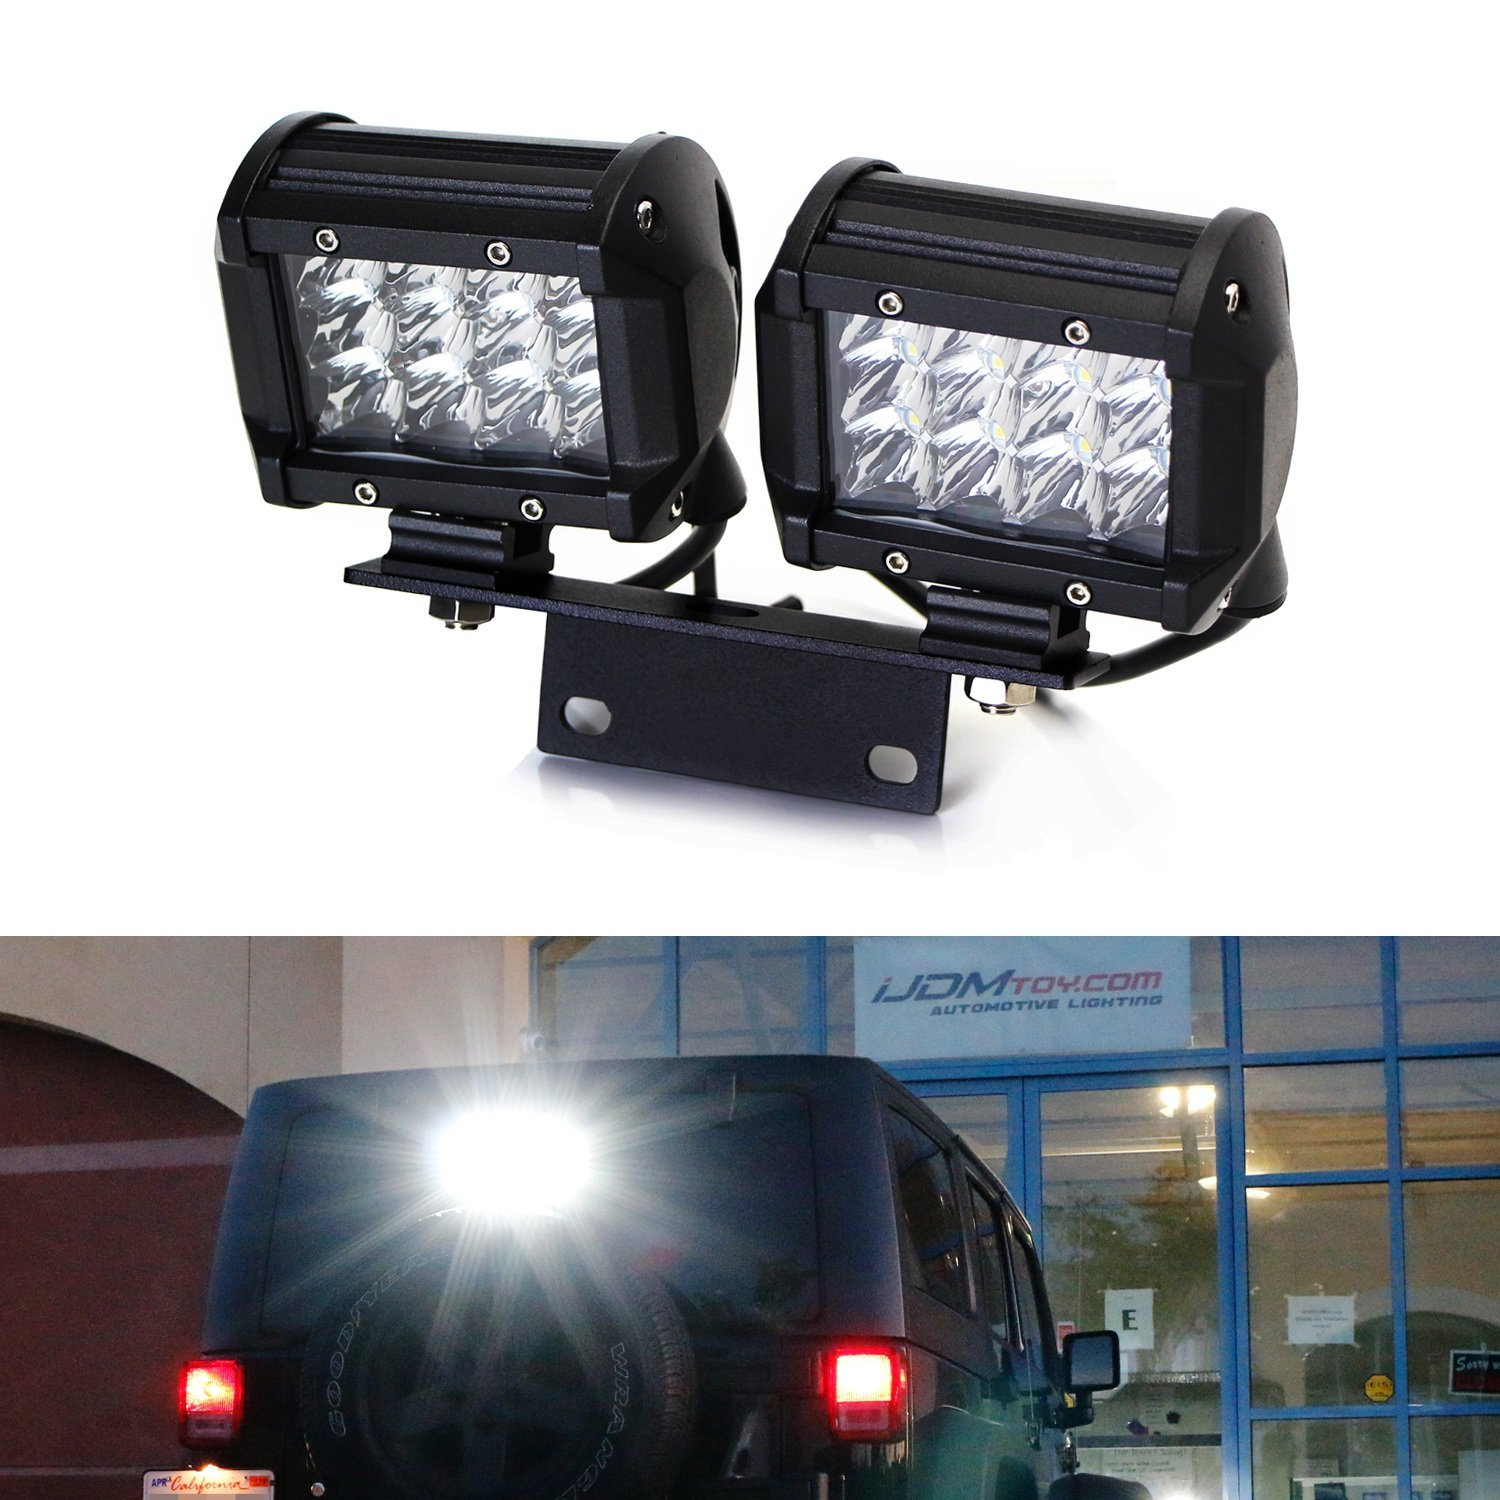 Ijdmtoy 72w Above 3rd Brake Dual Led Rear Lighting Kit W Mounting Relay Switch Walmart Bracket Wiring For 2007 2017 Jeep Wrangler Jk As Driving Search Lights